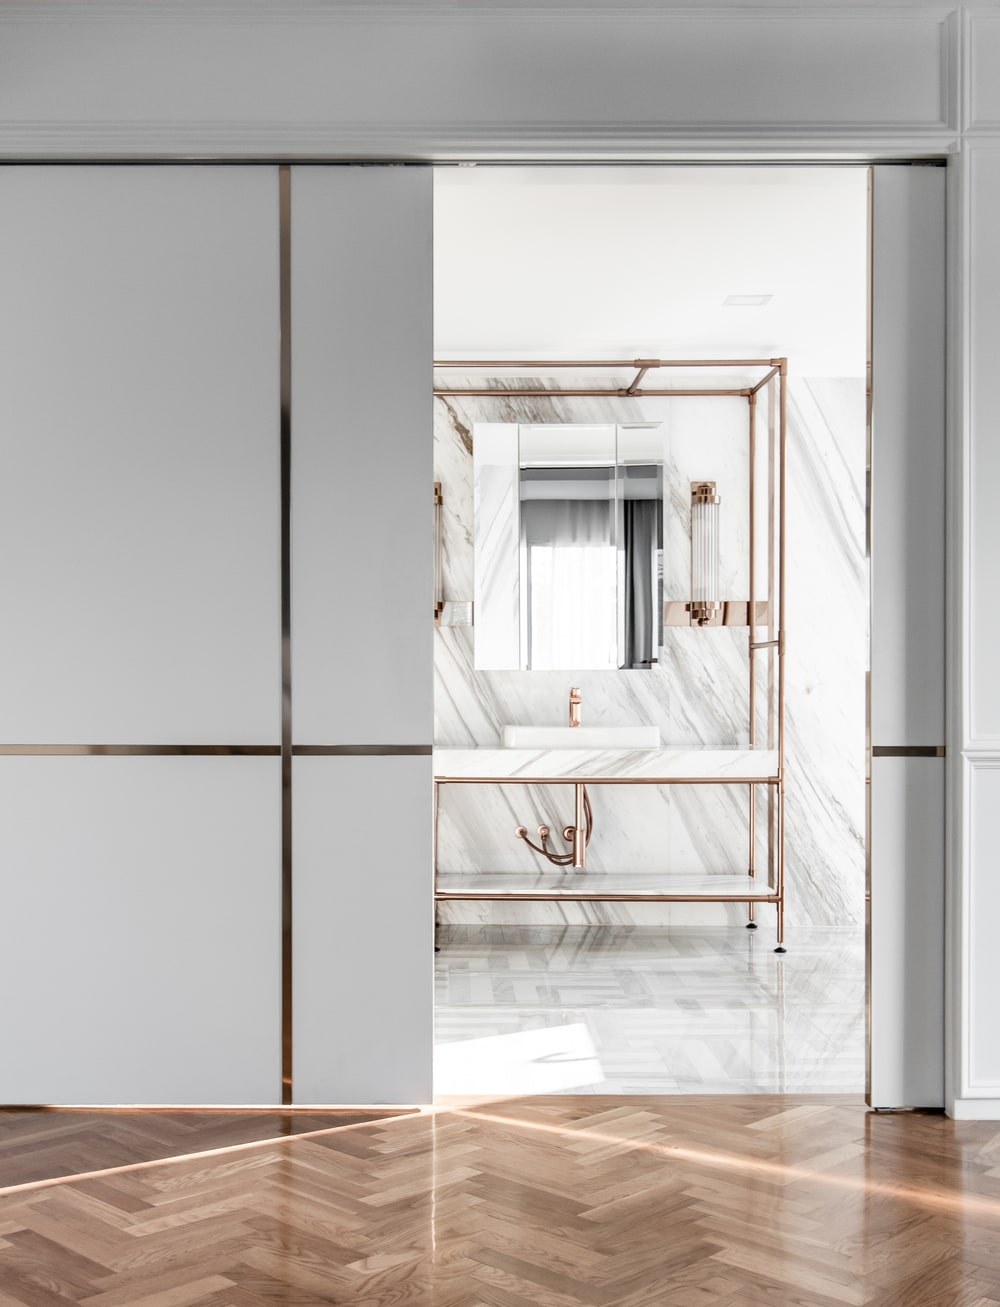 A few steps from the bed is this sliding door that leads to the bathroom with golden accents on it.